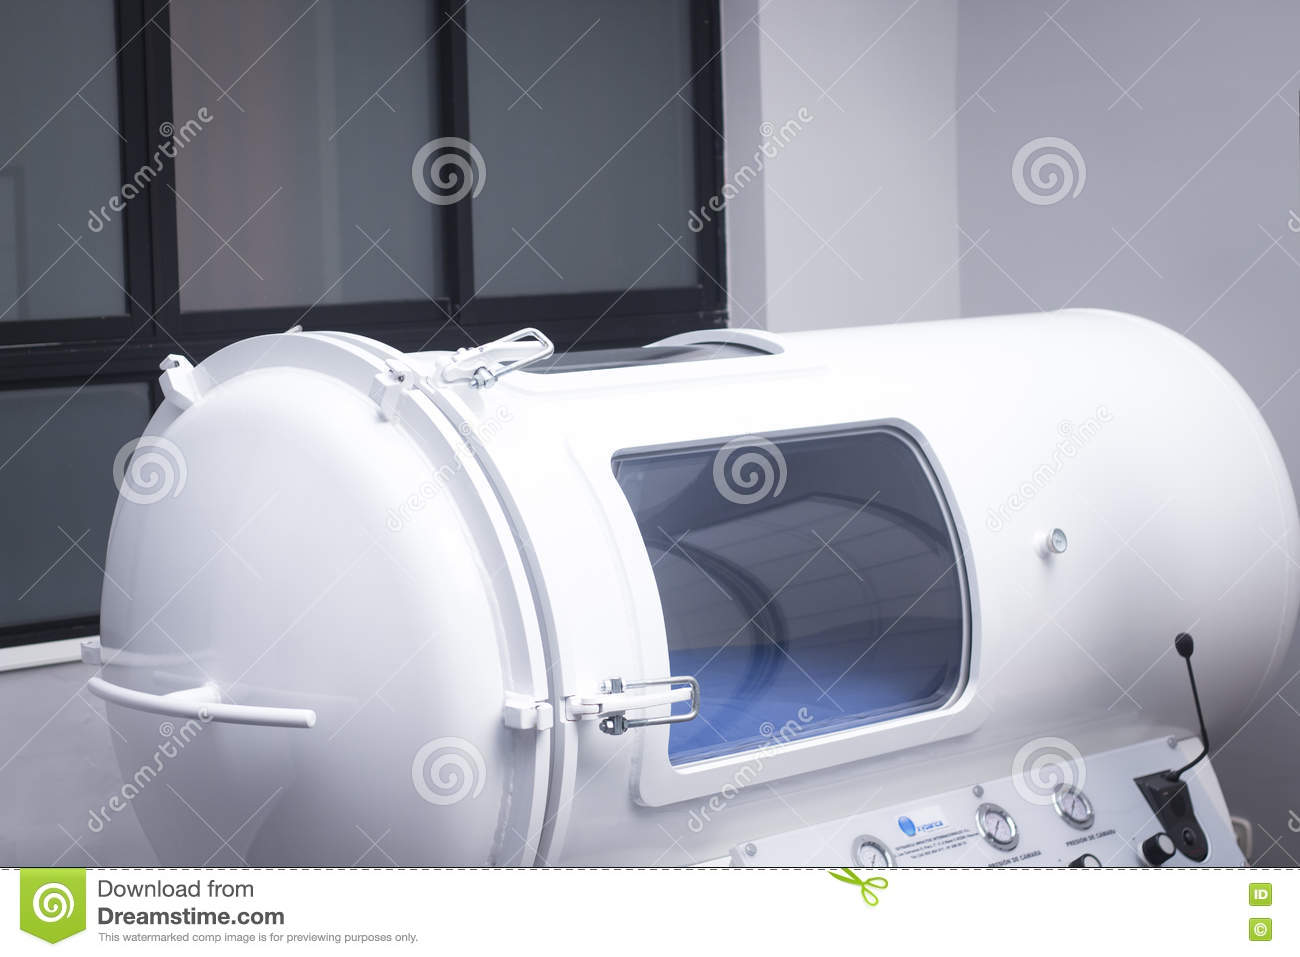 HBOT hyperbaric oxygen therapy